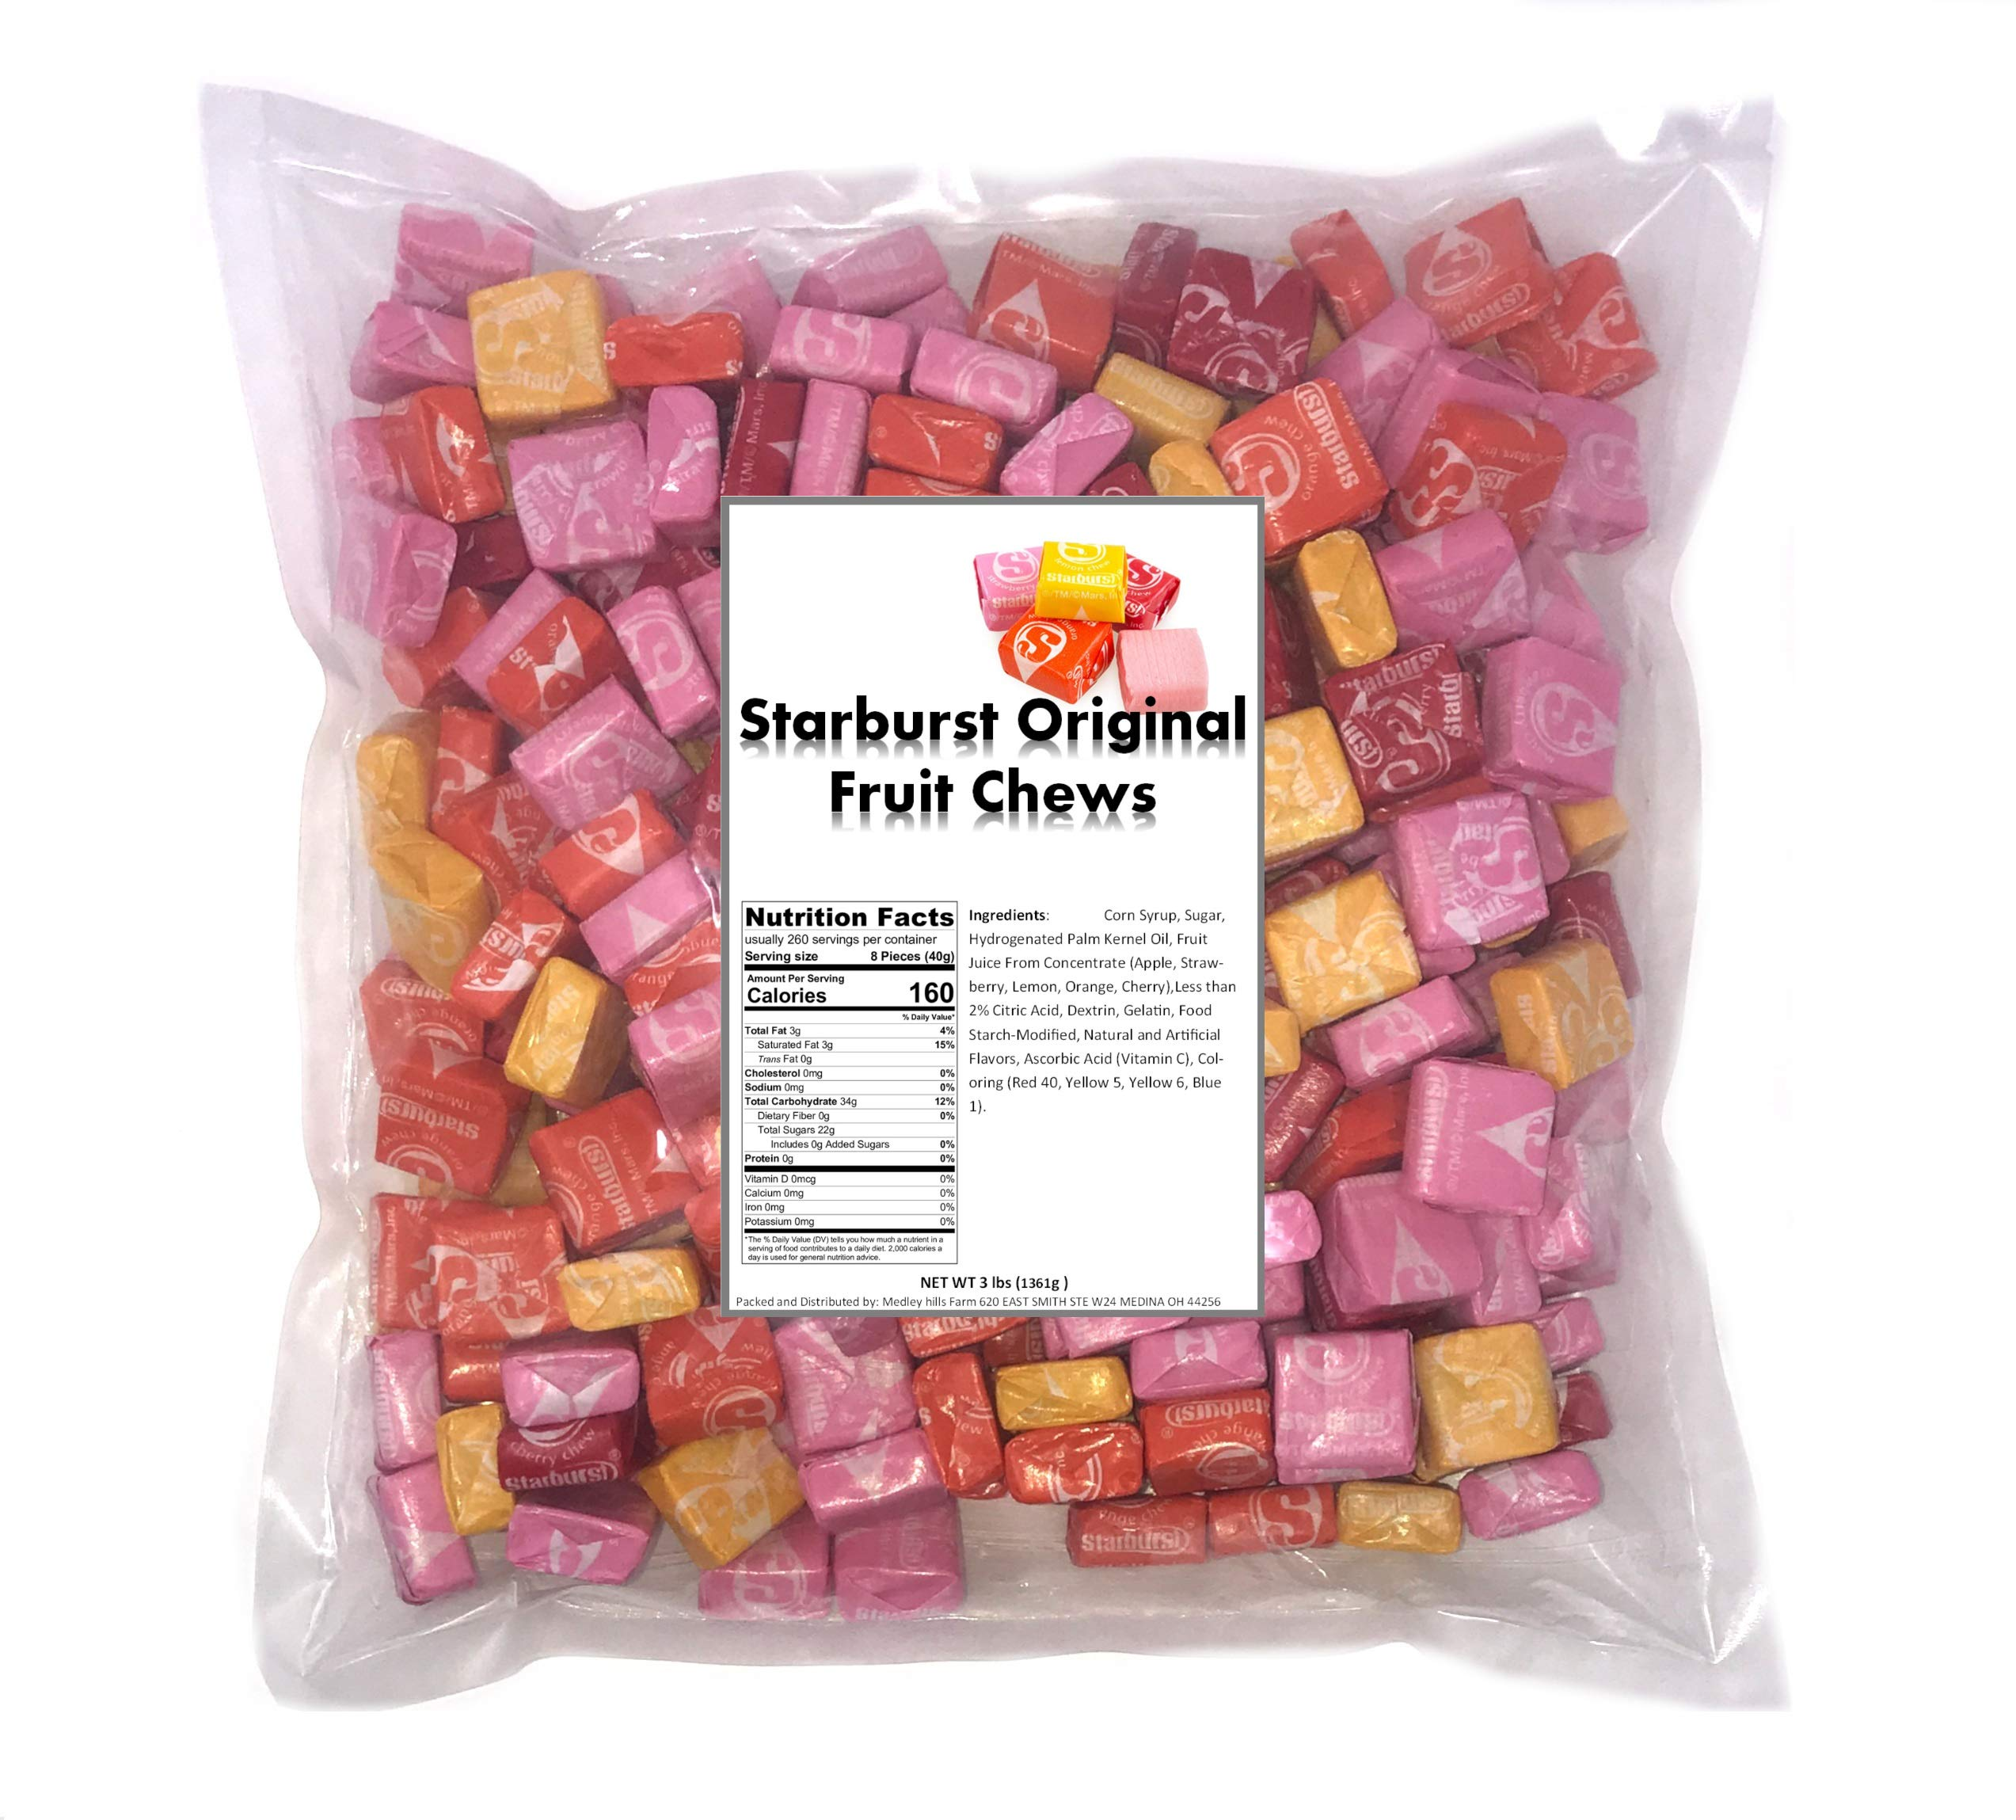 Medley Hills Farm Starburst Original Fruit Chews 3 LB Bag, Assorted Fruity Candy - Cherry, Strawberry, Lemon, Orange Flavored, Contains About 260 Pieces Bulk Candy Individually Wrapped